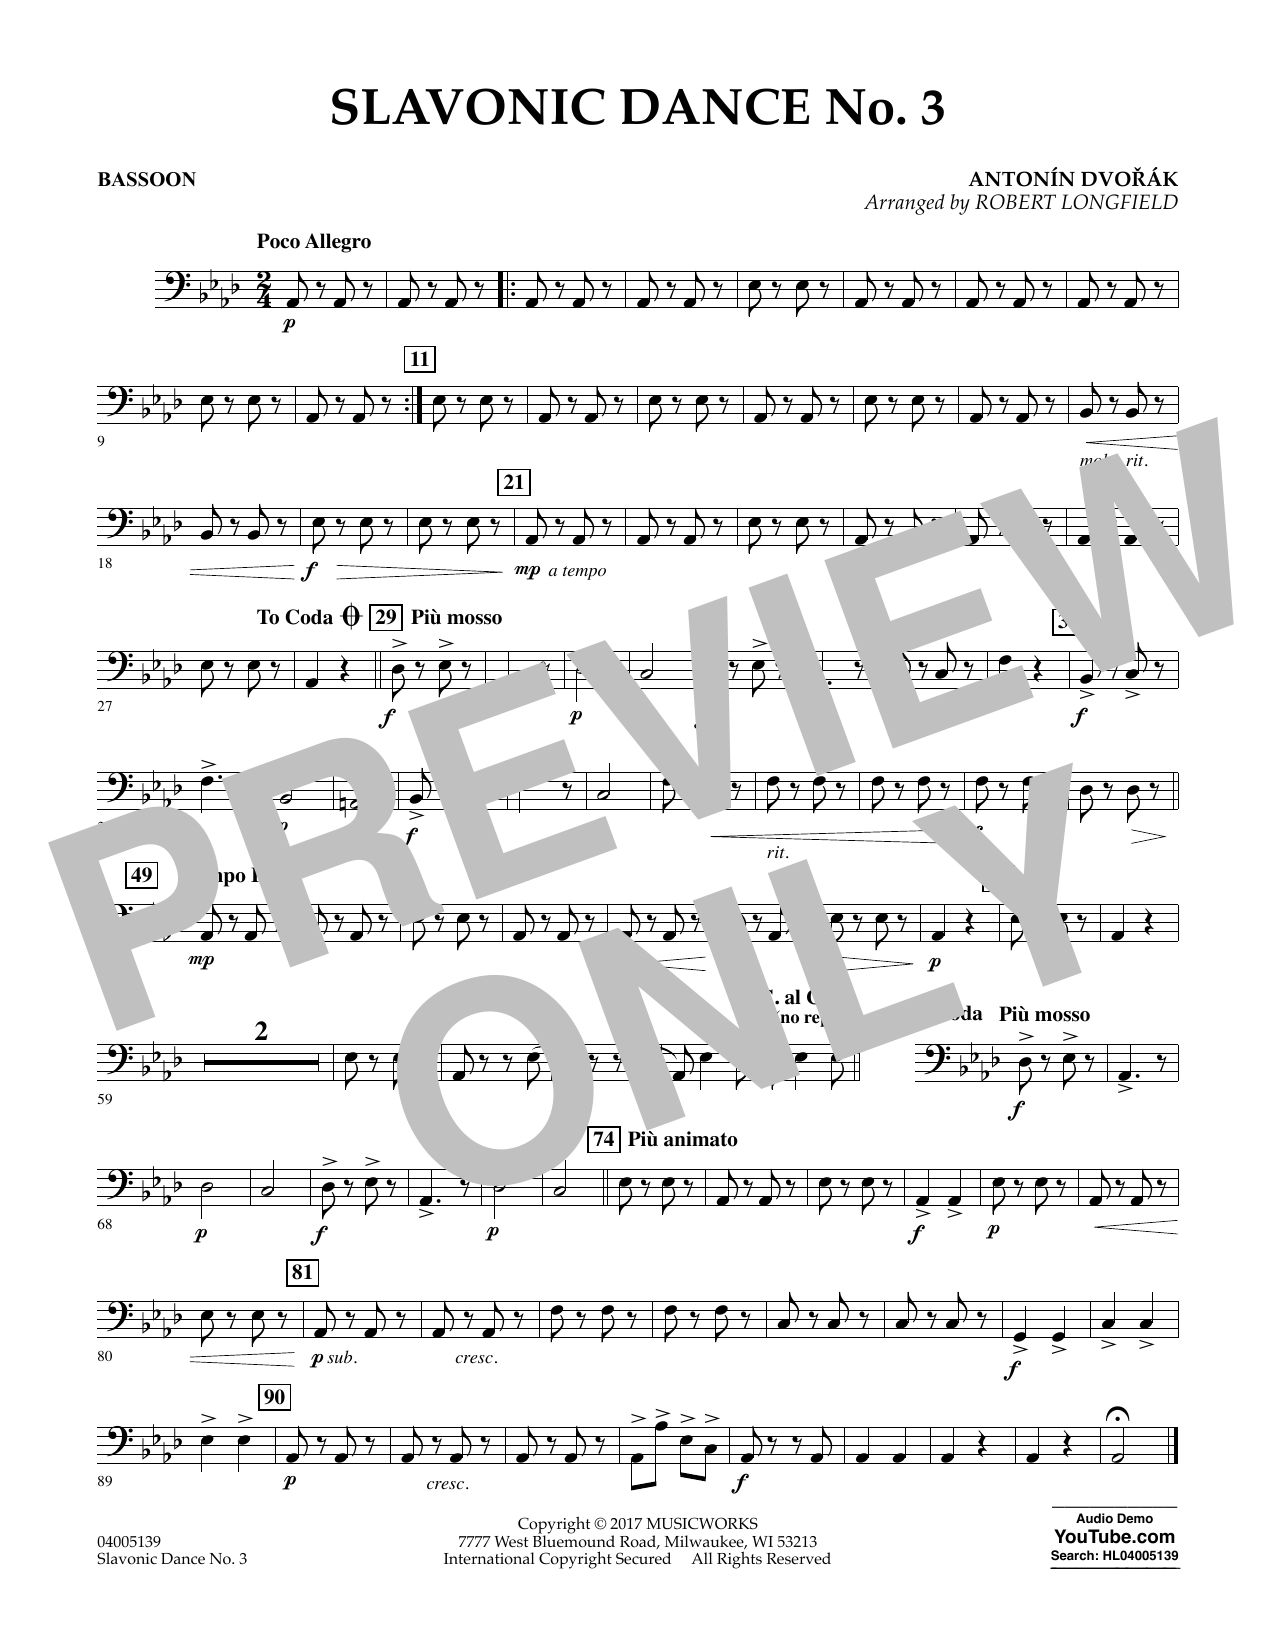 Robert Longfield Slavonic Dance No. 3 - Bassoon sheet music notes and chords. Download Printable PDF.